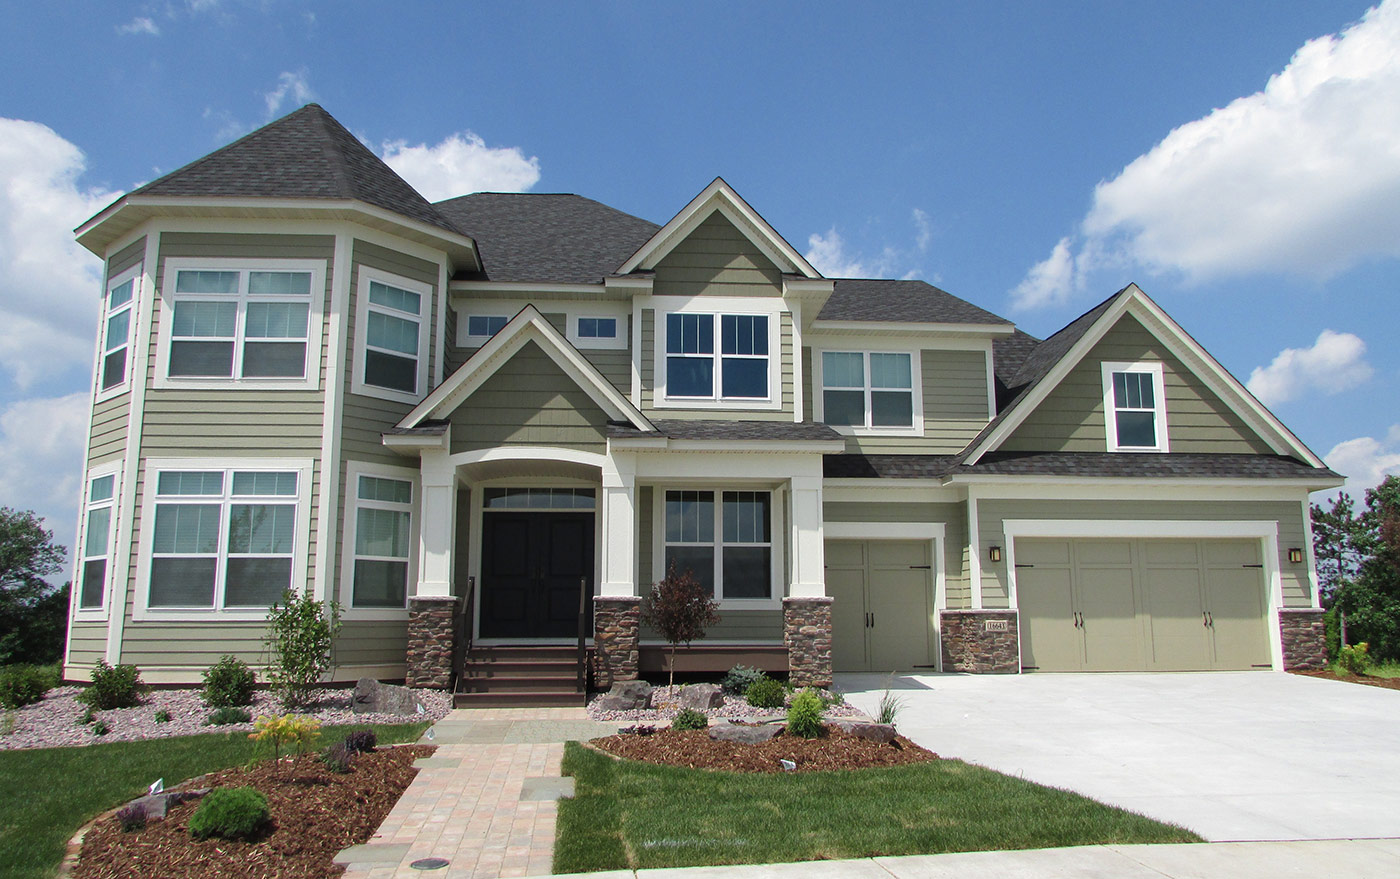 Custom home exteriors custom home builders new home Home builder contractor